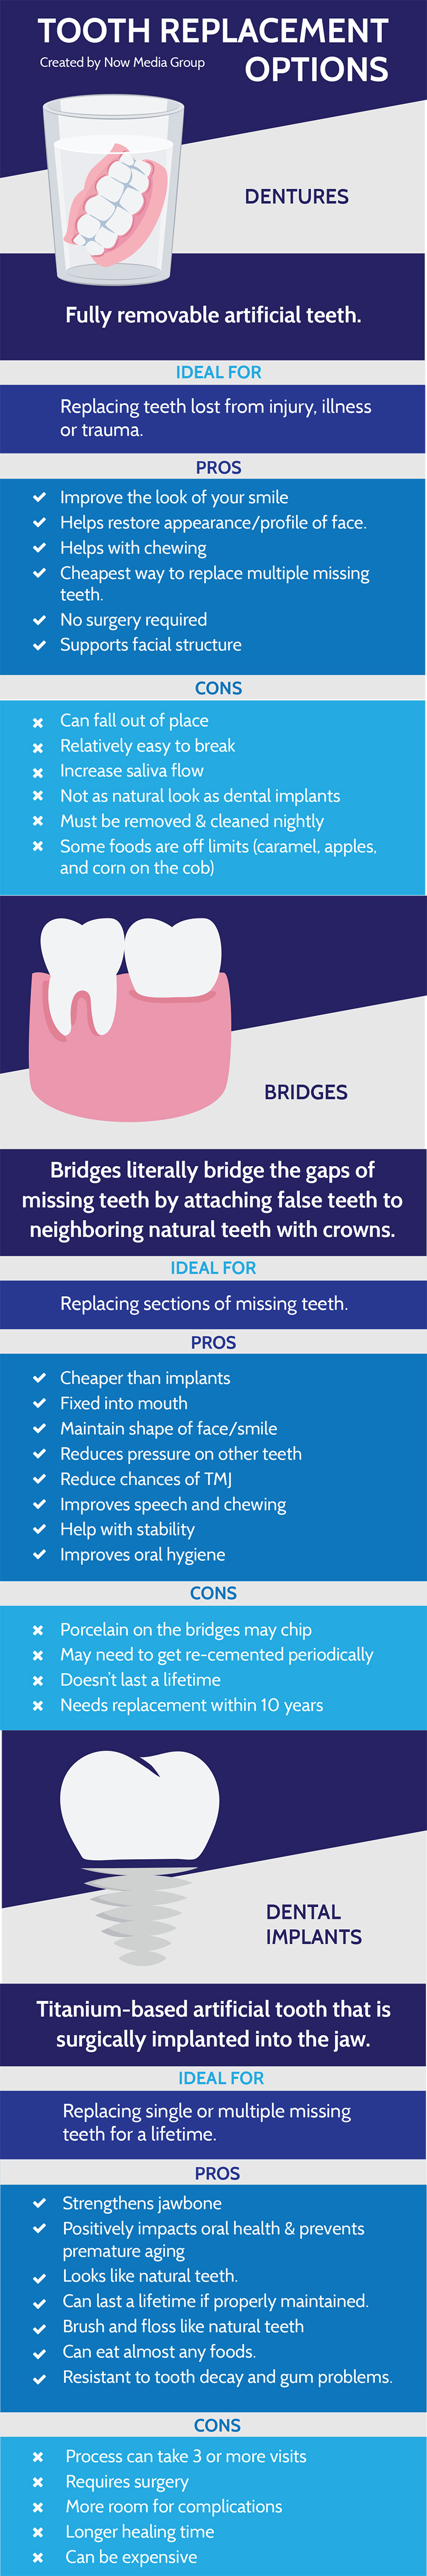 Tooth replacement options compared